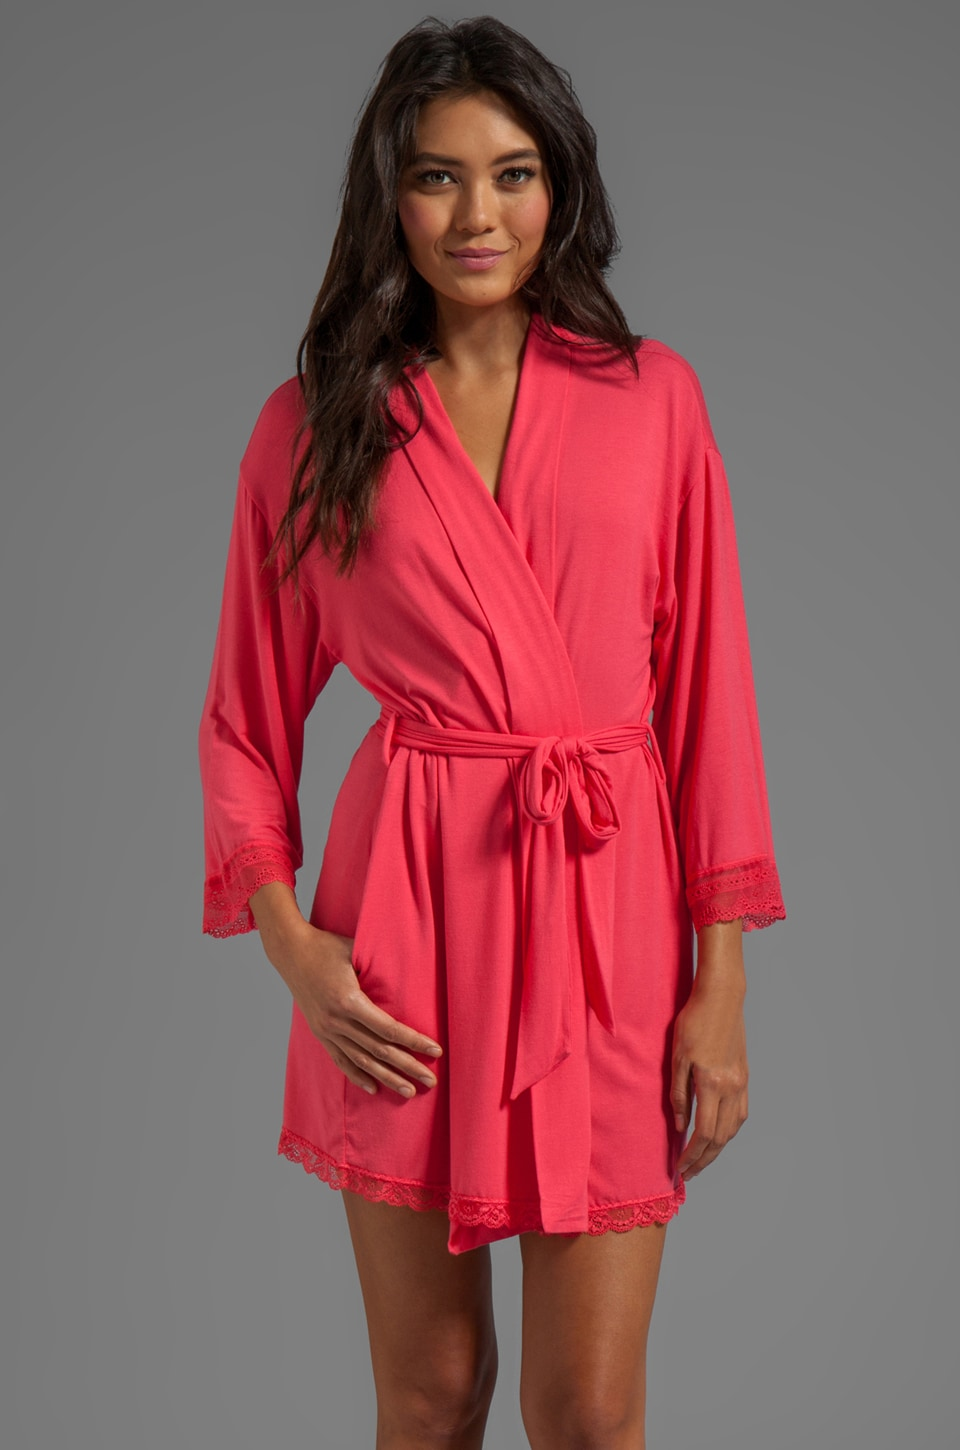 Juicy Couture Sleep Essential Robe in Geranium